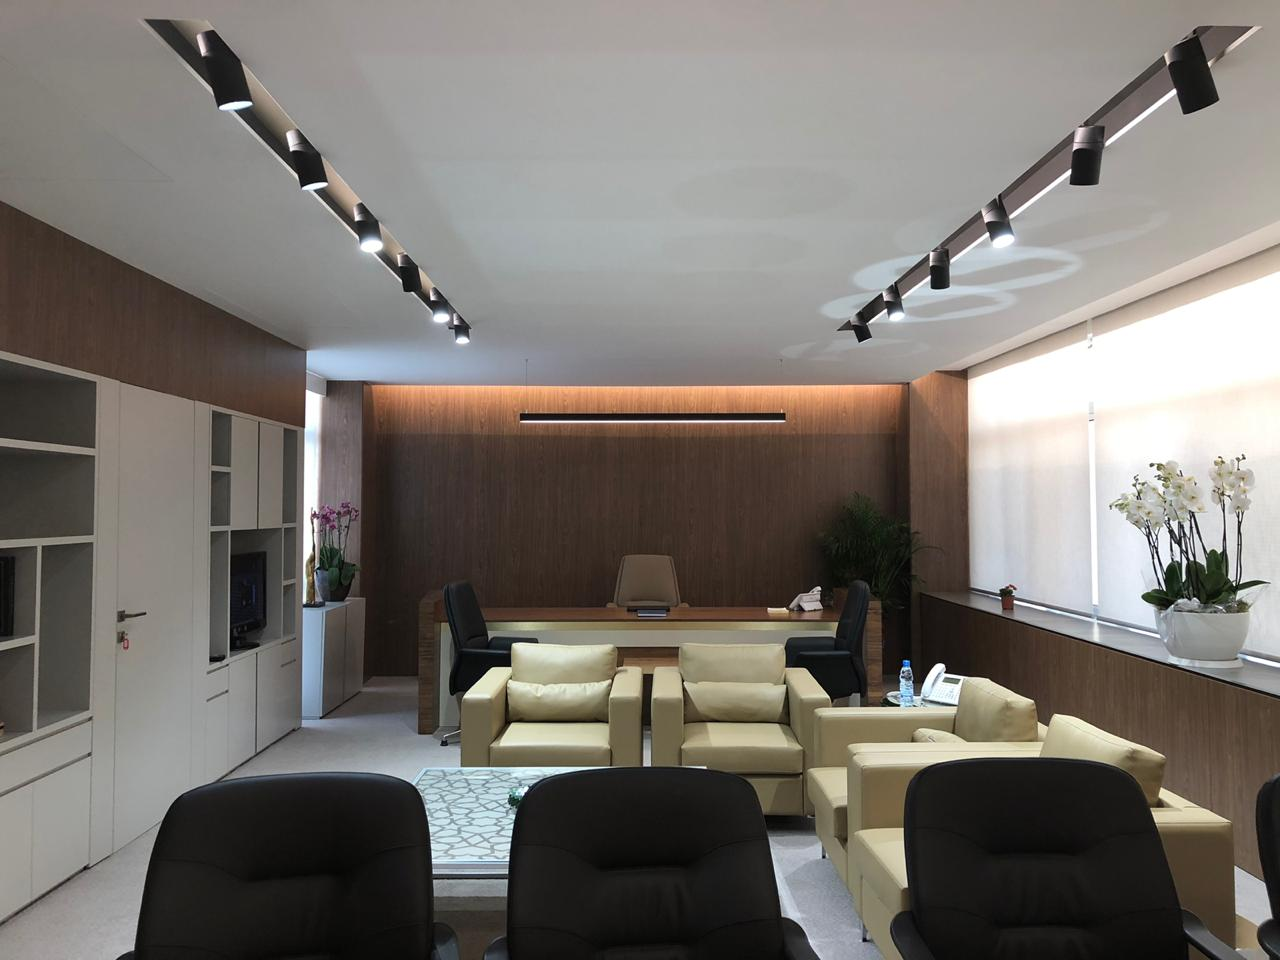 Private Office |  Interior Renovation | Beirut, Lebanon